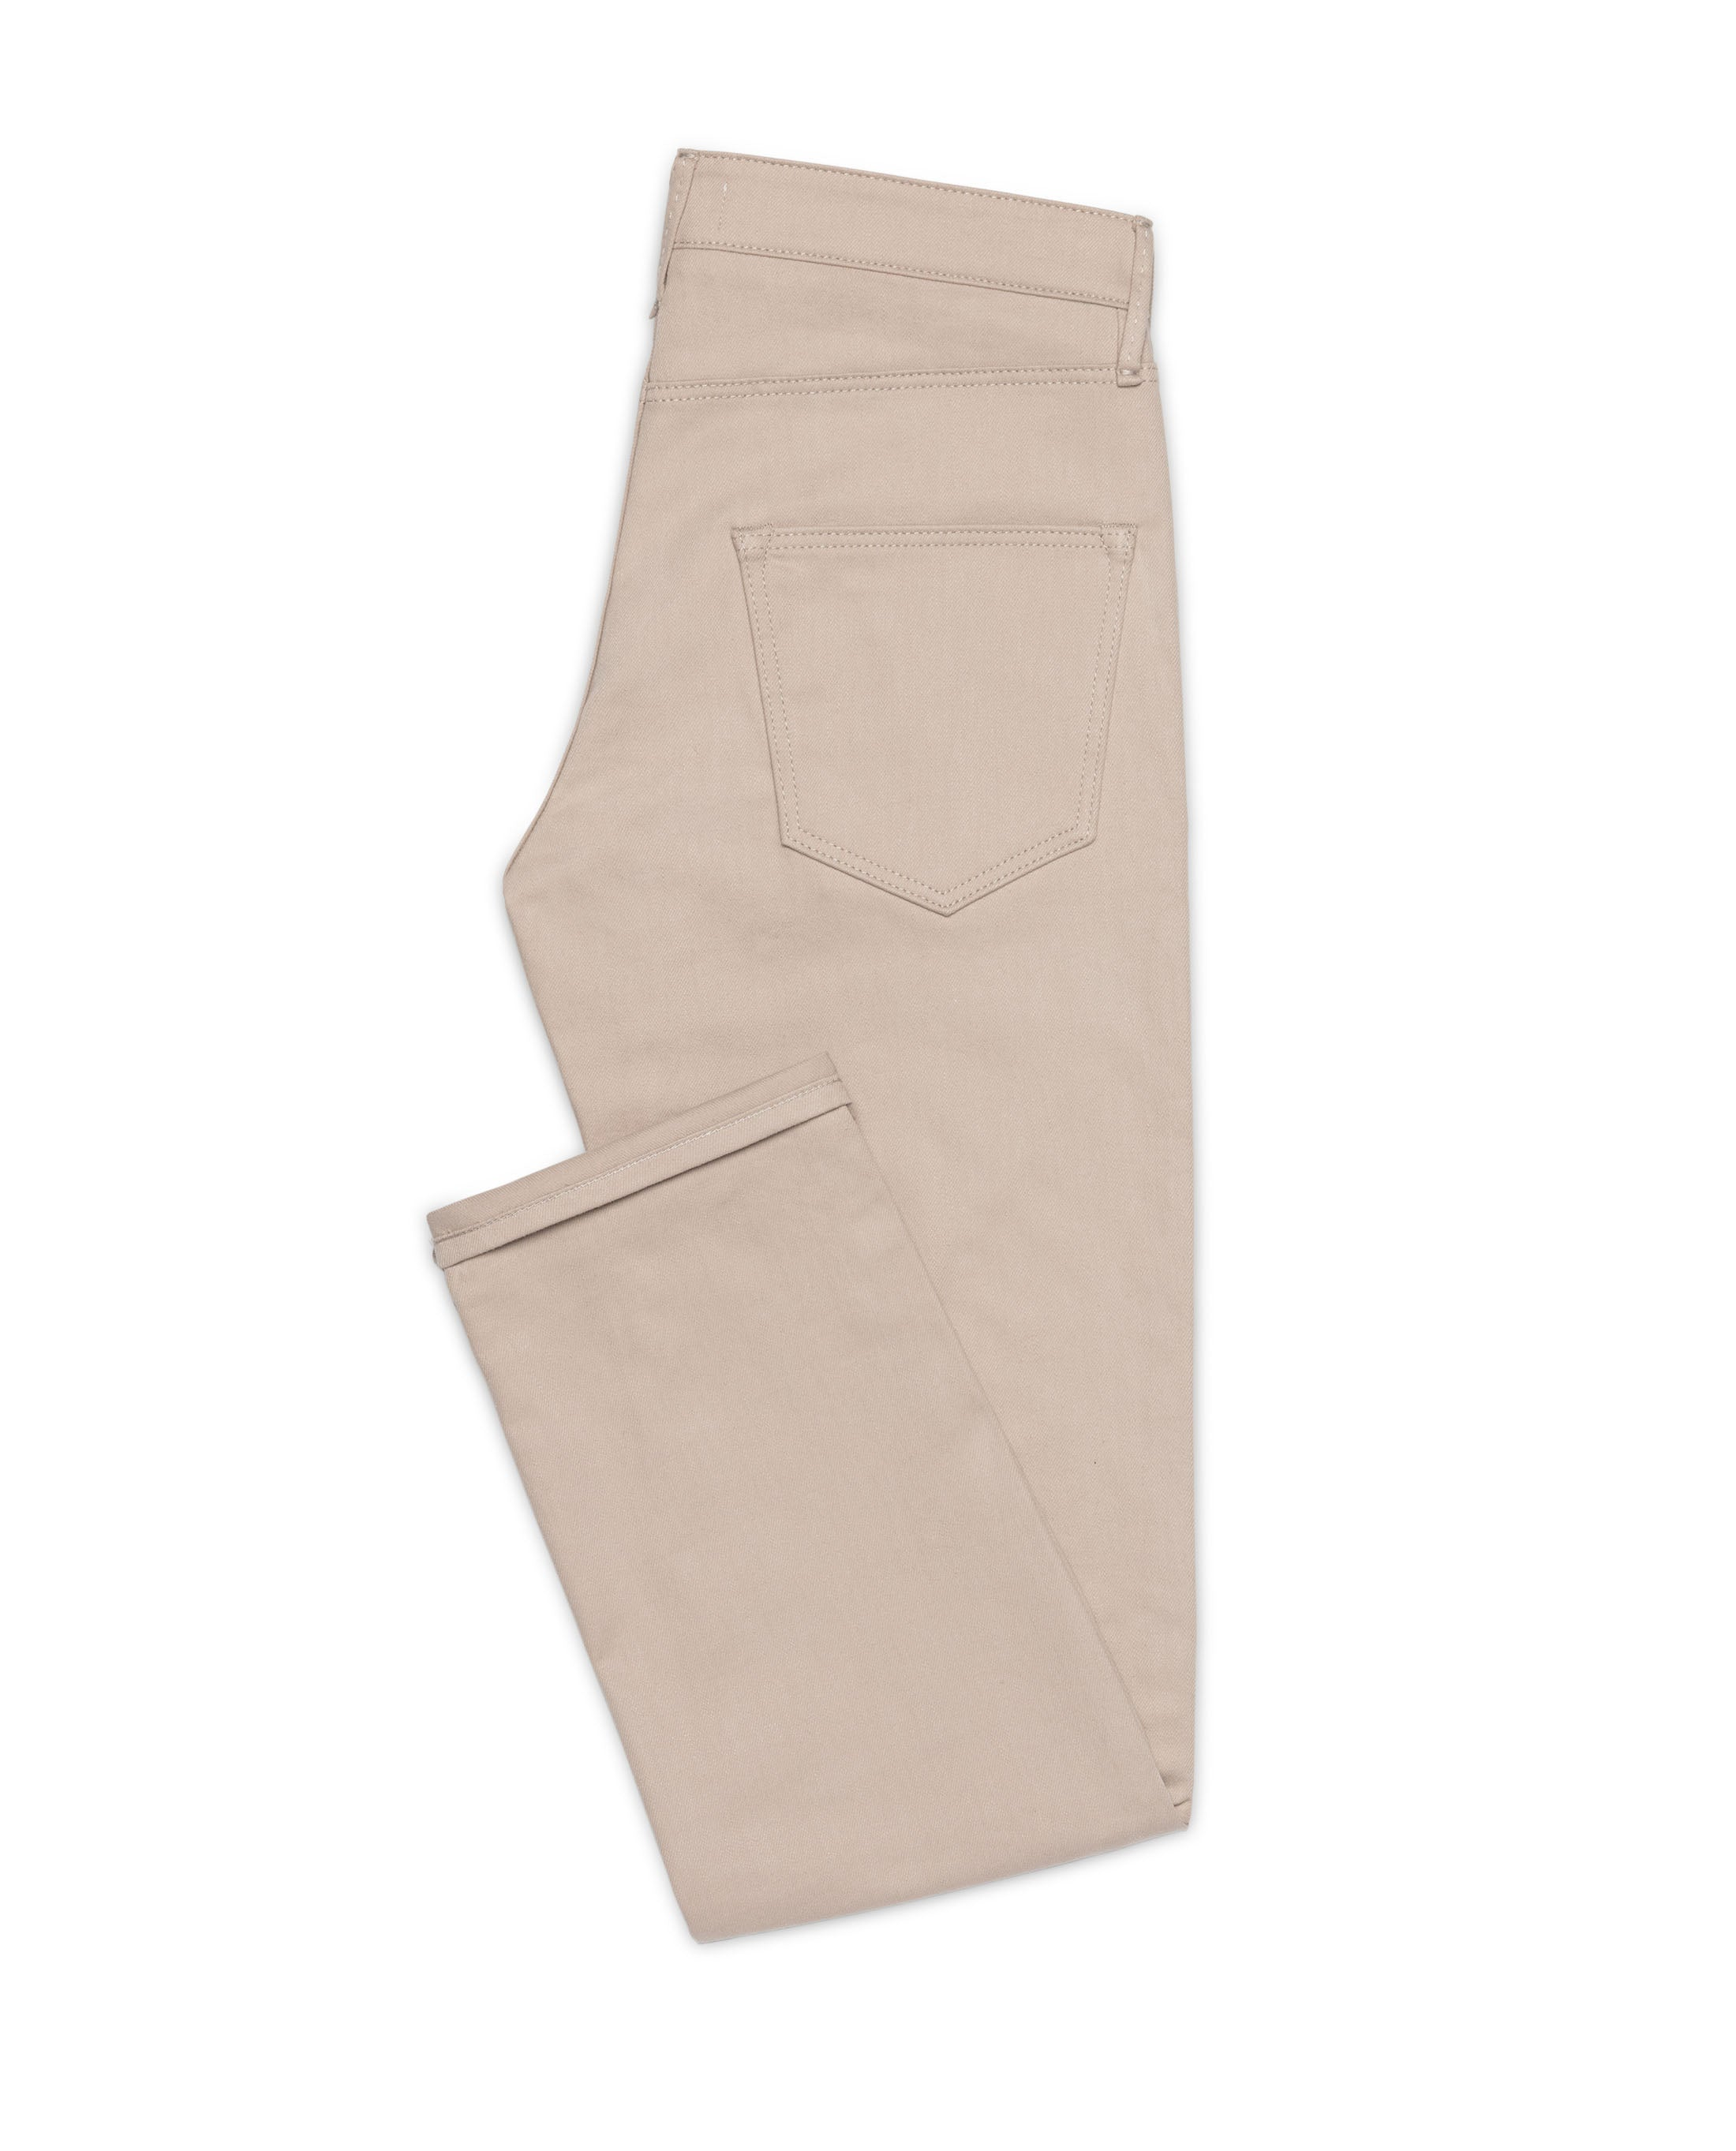 COL002 Sand 5 pocket Made In Italy. Medlemspris 1.100,-